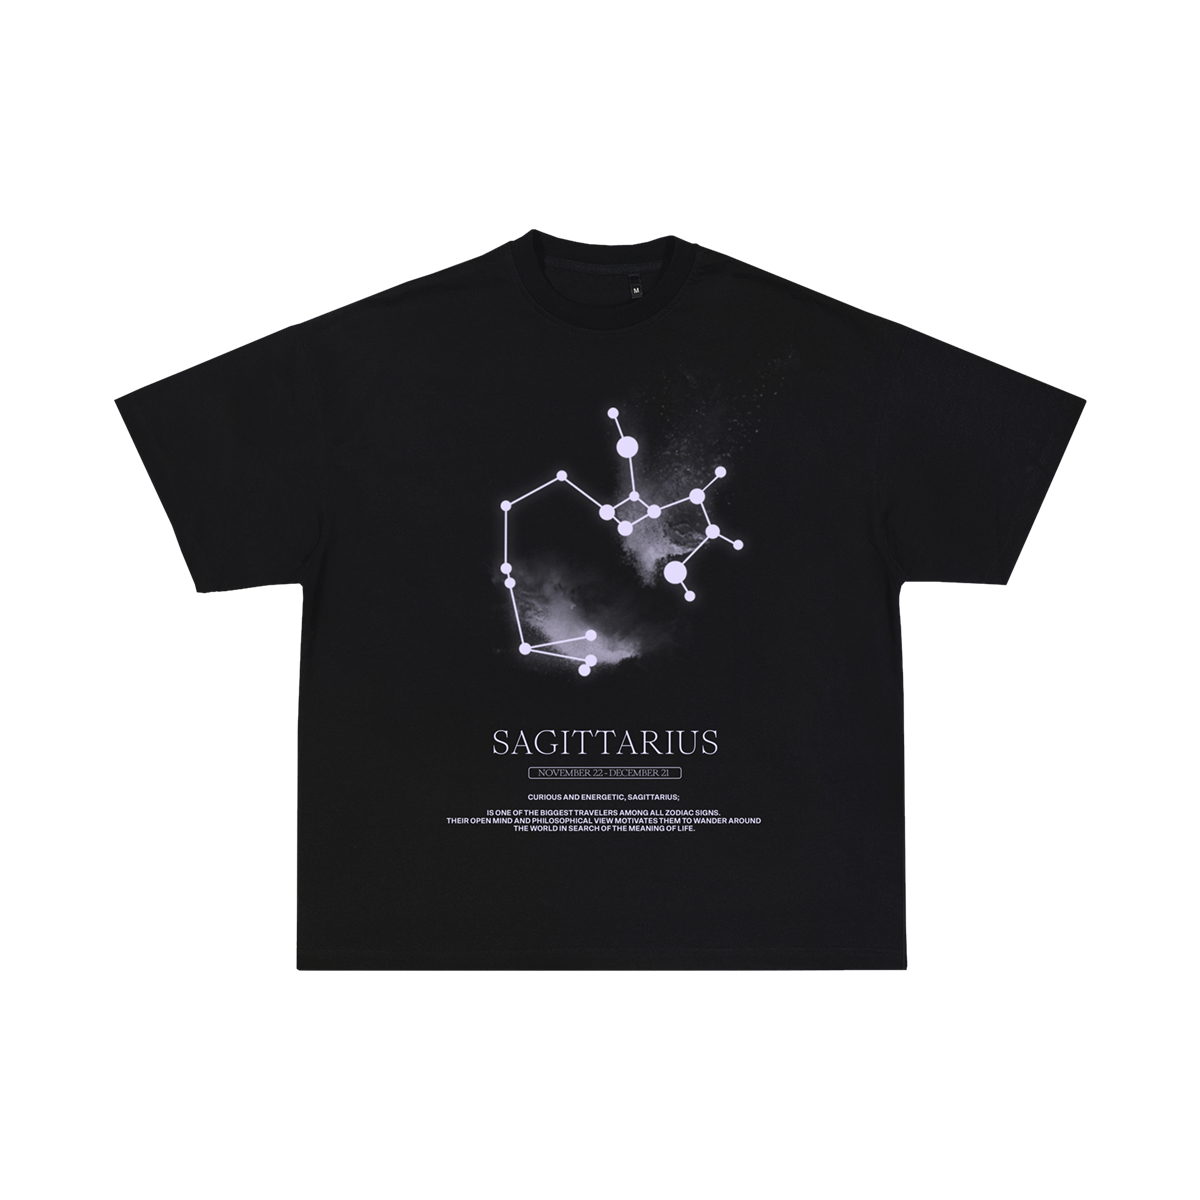 Sagittarius T-Shirt + Wunna Digil Download